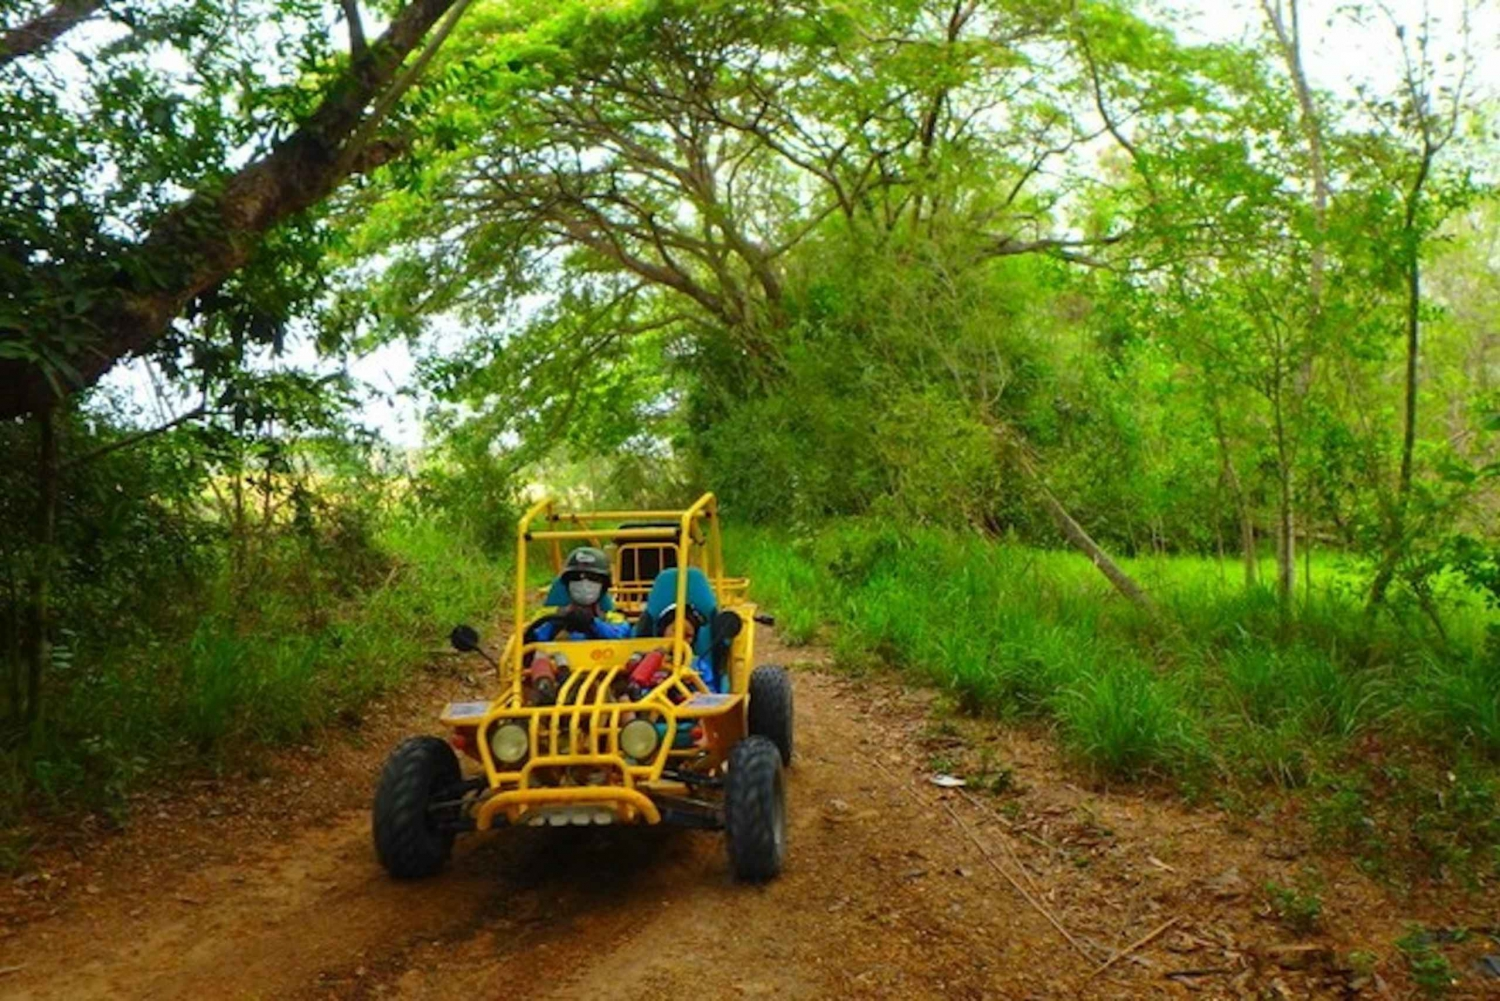 2-Hour ATV Off-Road Adventure Tour with Meal